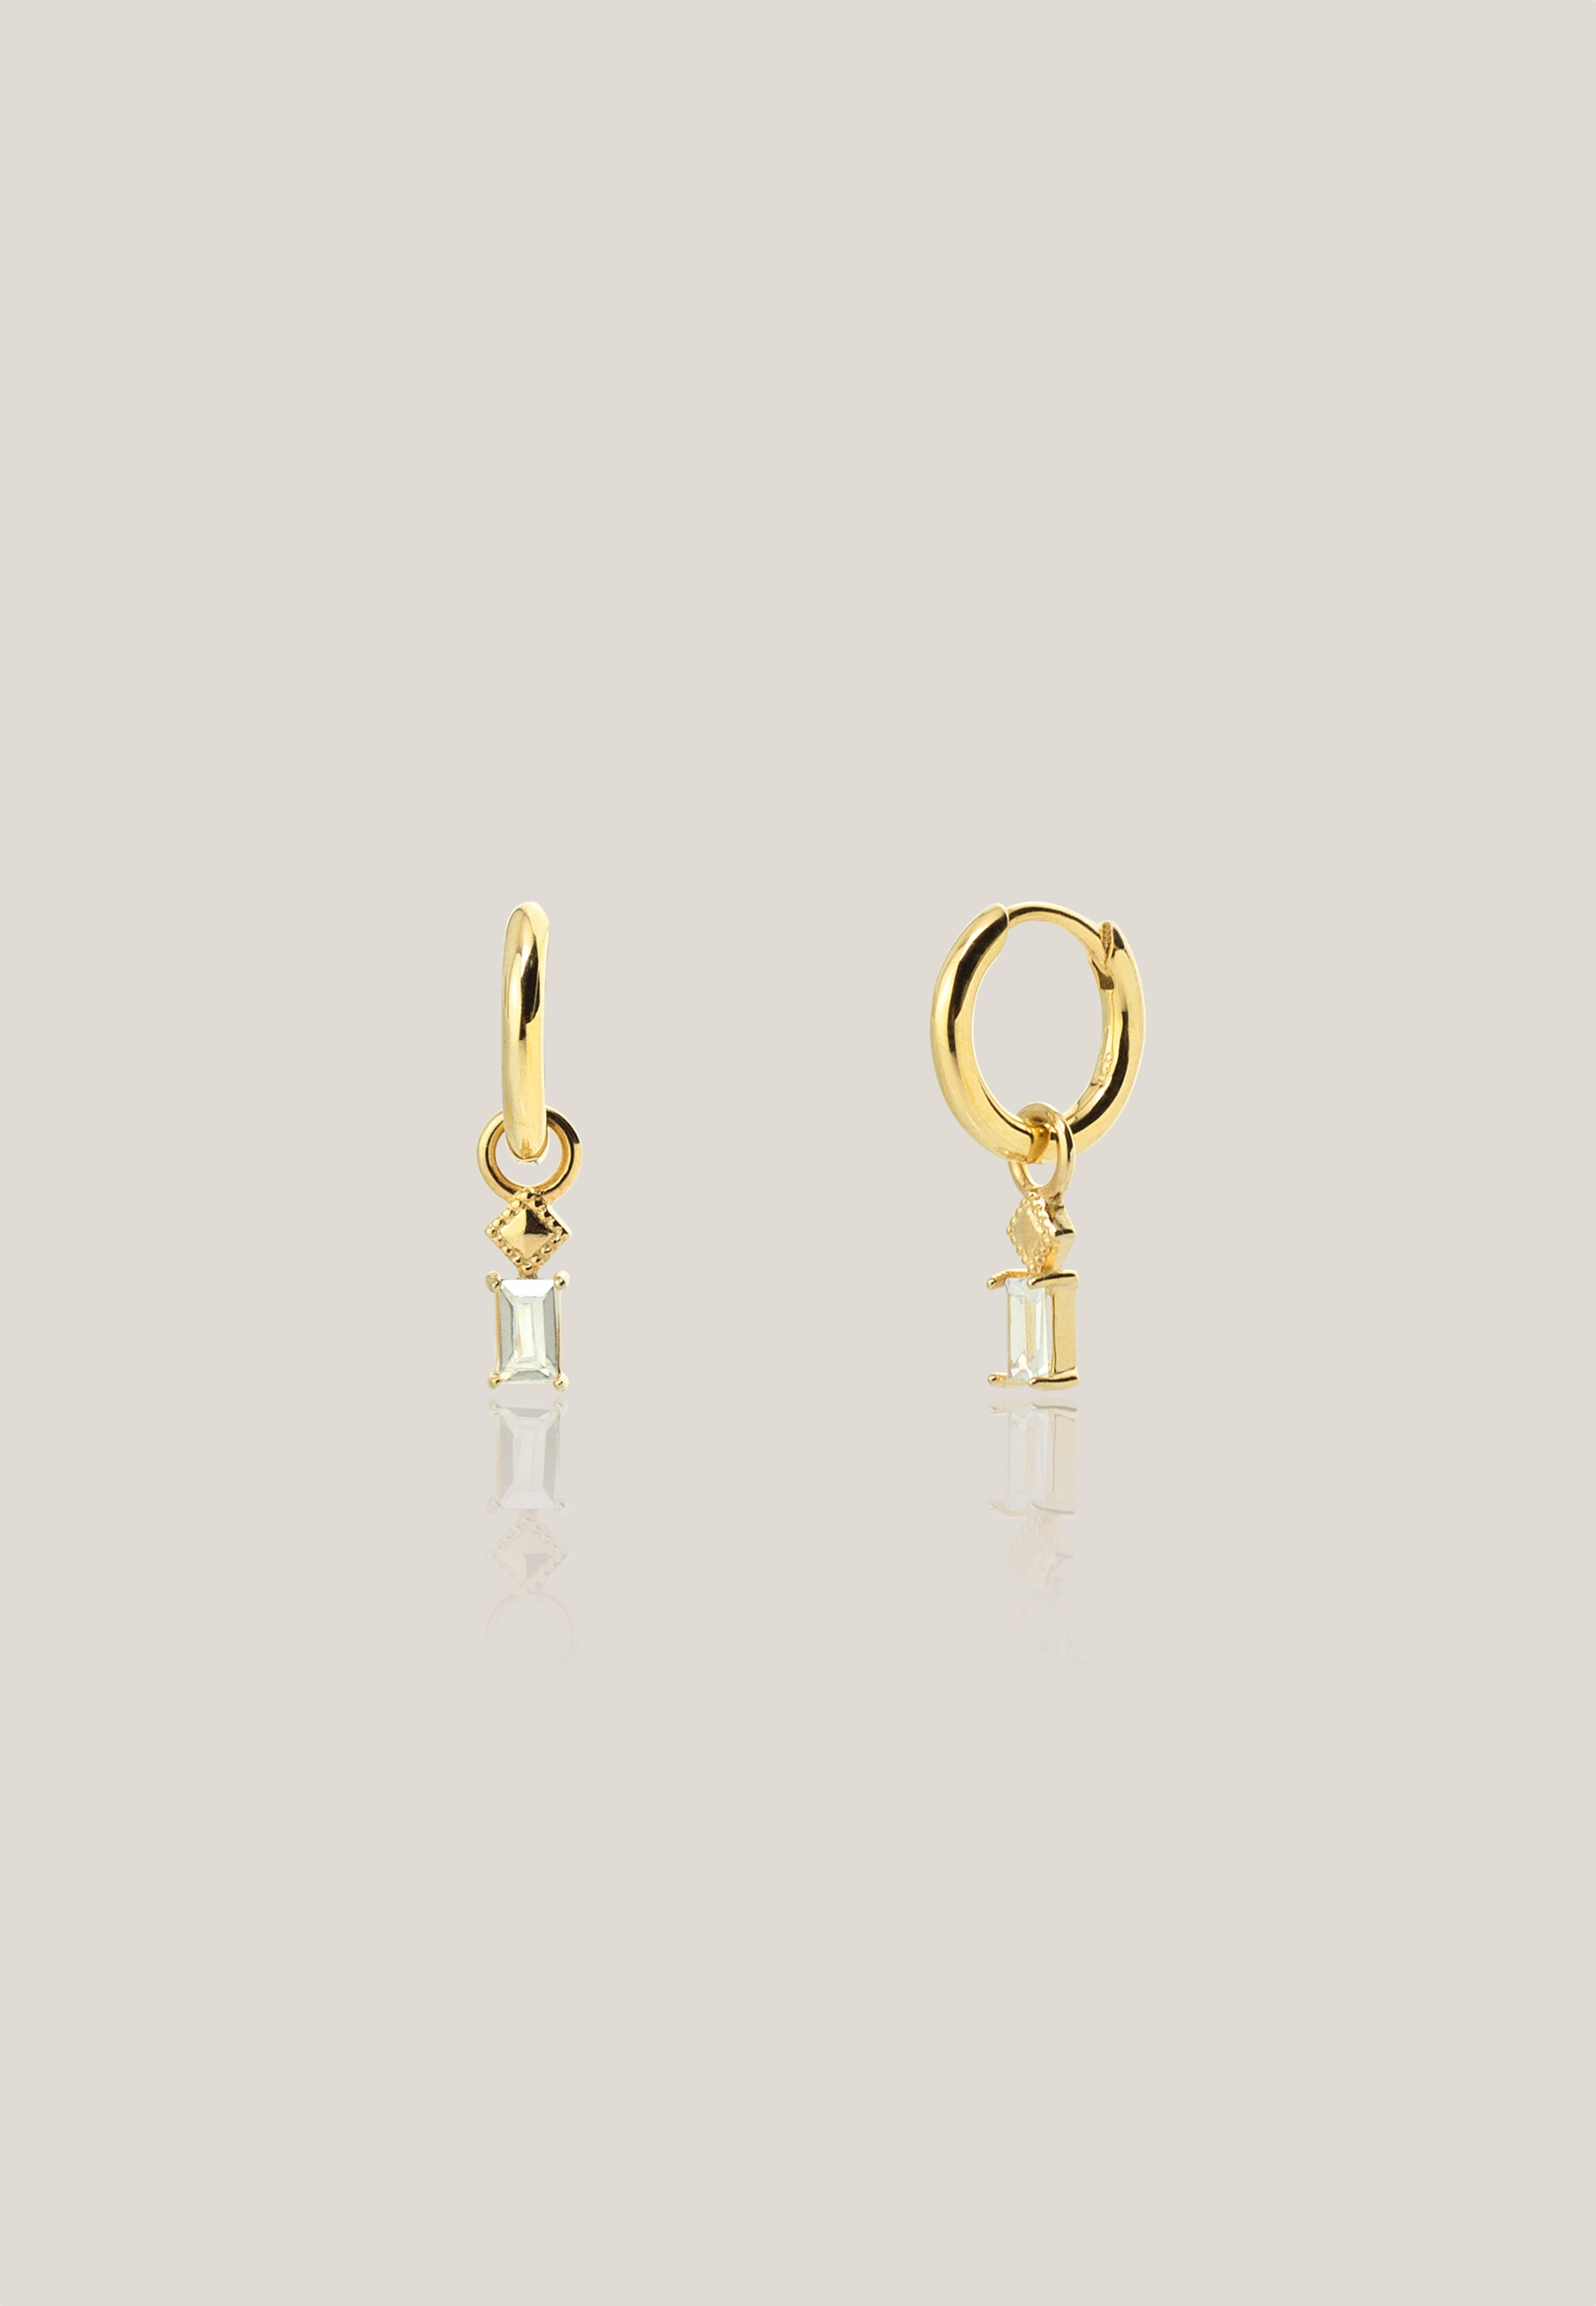 ASTRID gold earrings